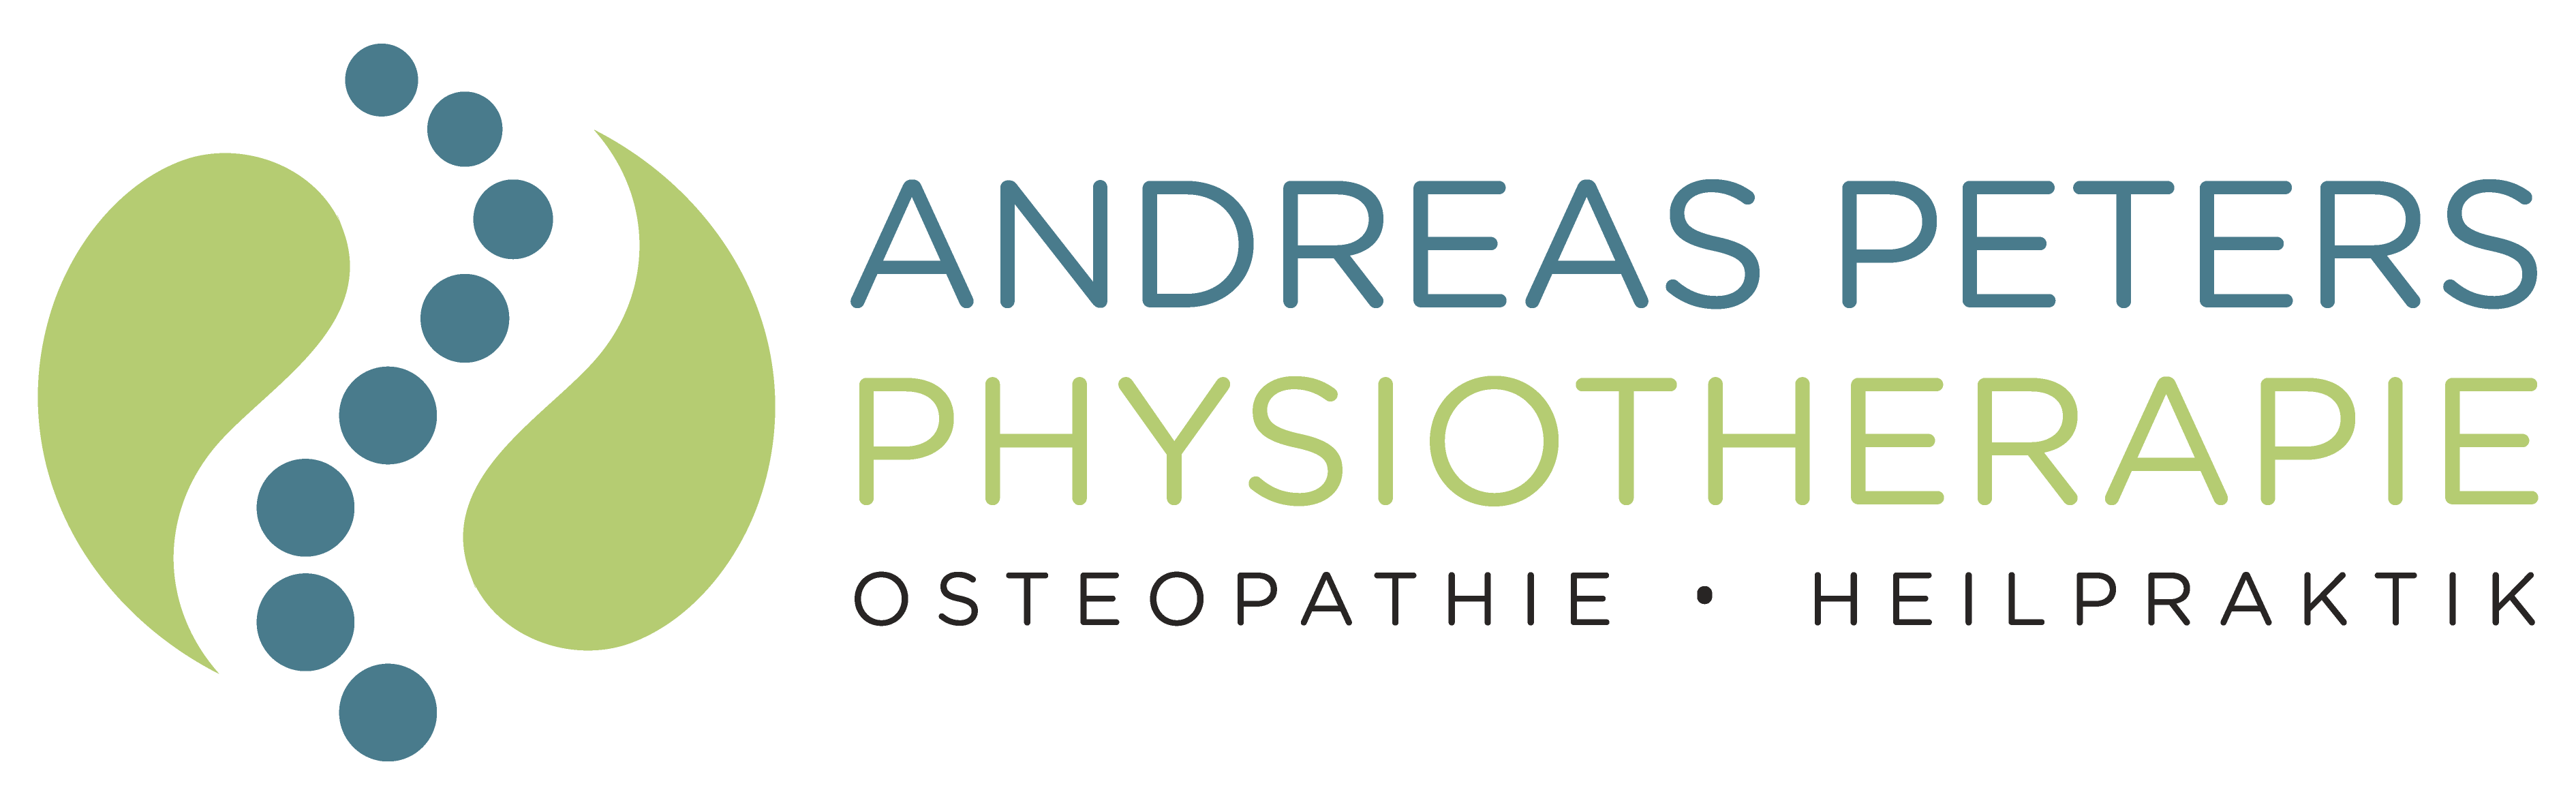 Andreas Peters Physiotherapie